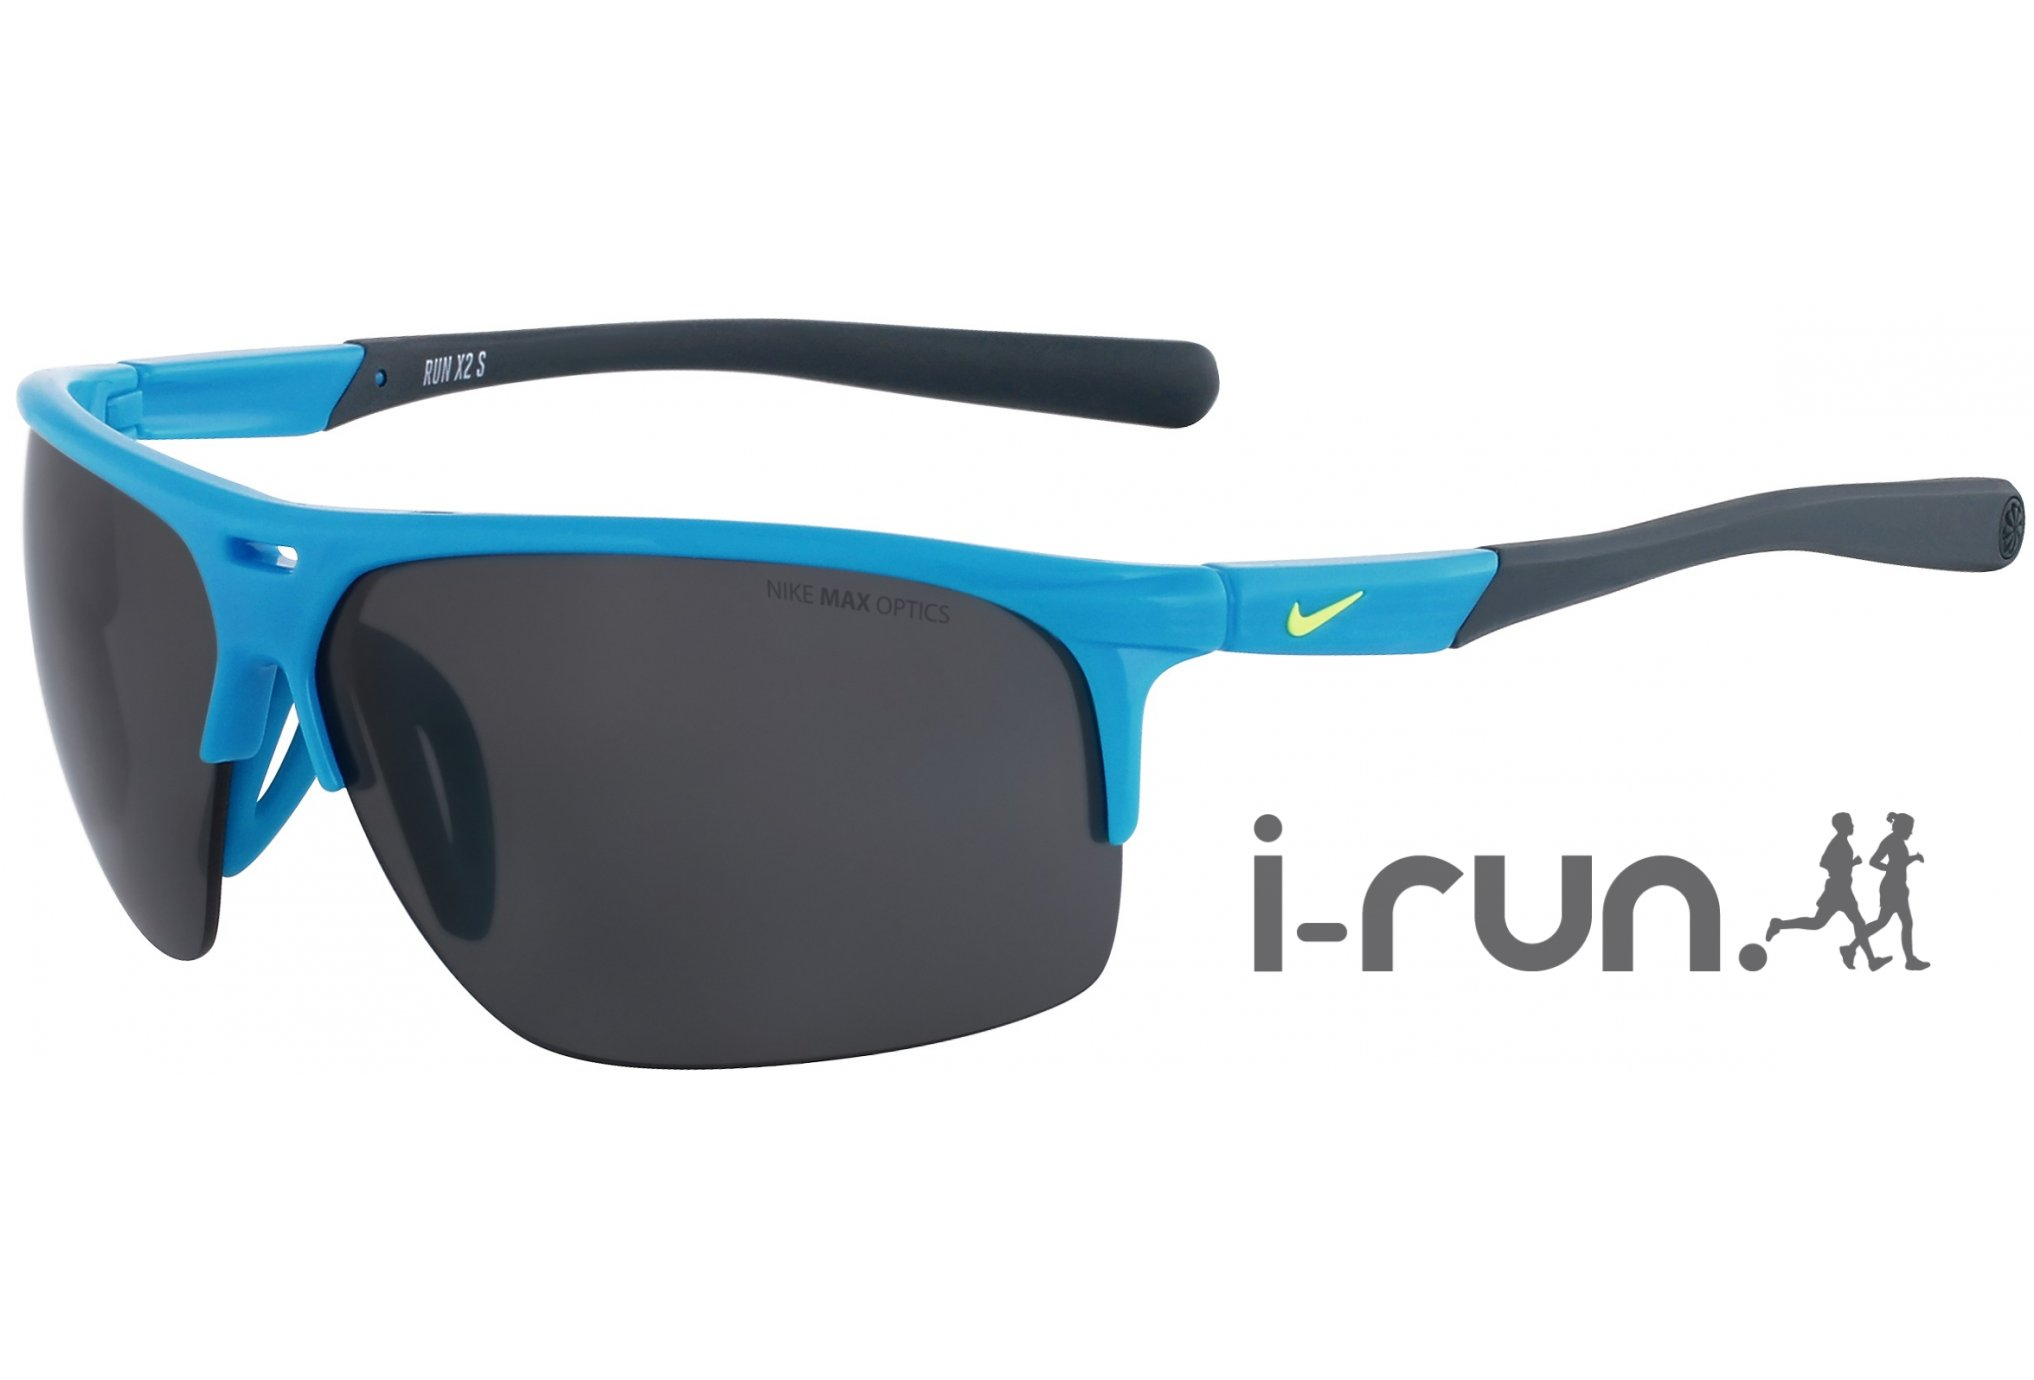 Nike Lunettes Run X2 S Lunettes